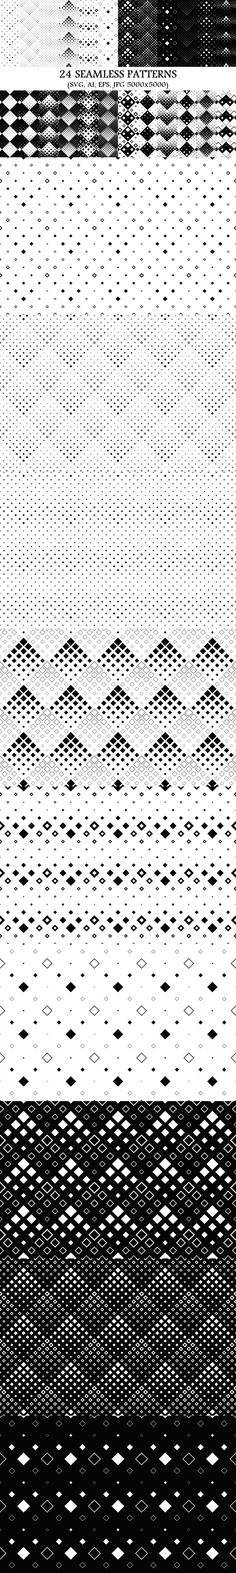 24 Seamless Square Patterns #abstract #PremiumBackground #zydd #squares #patterns #PatternSets #SeamlessPattern #BackgroundCollection #diagonal #geometry #BackgroundGraphic #seamlesspattern #PatternDesign #PremiumVectorGraphics #BackgroundSet #BackgroundSets #GeometricPatterns #seamless #CheapVectorBackgrounds